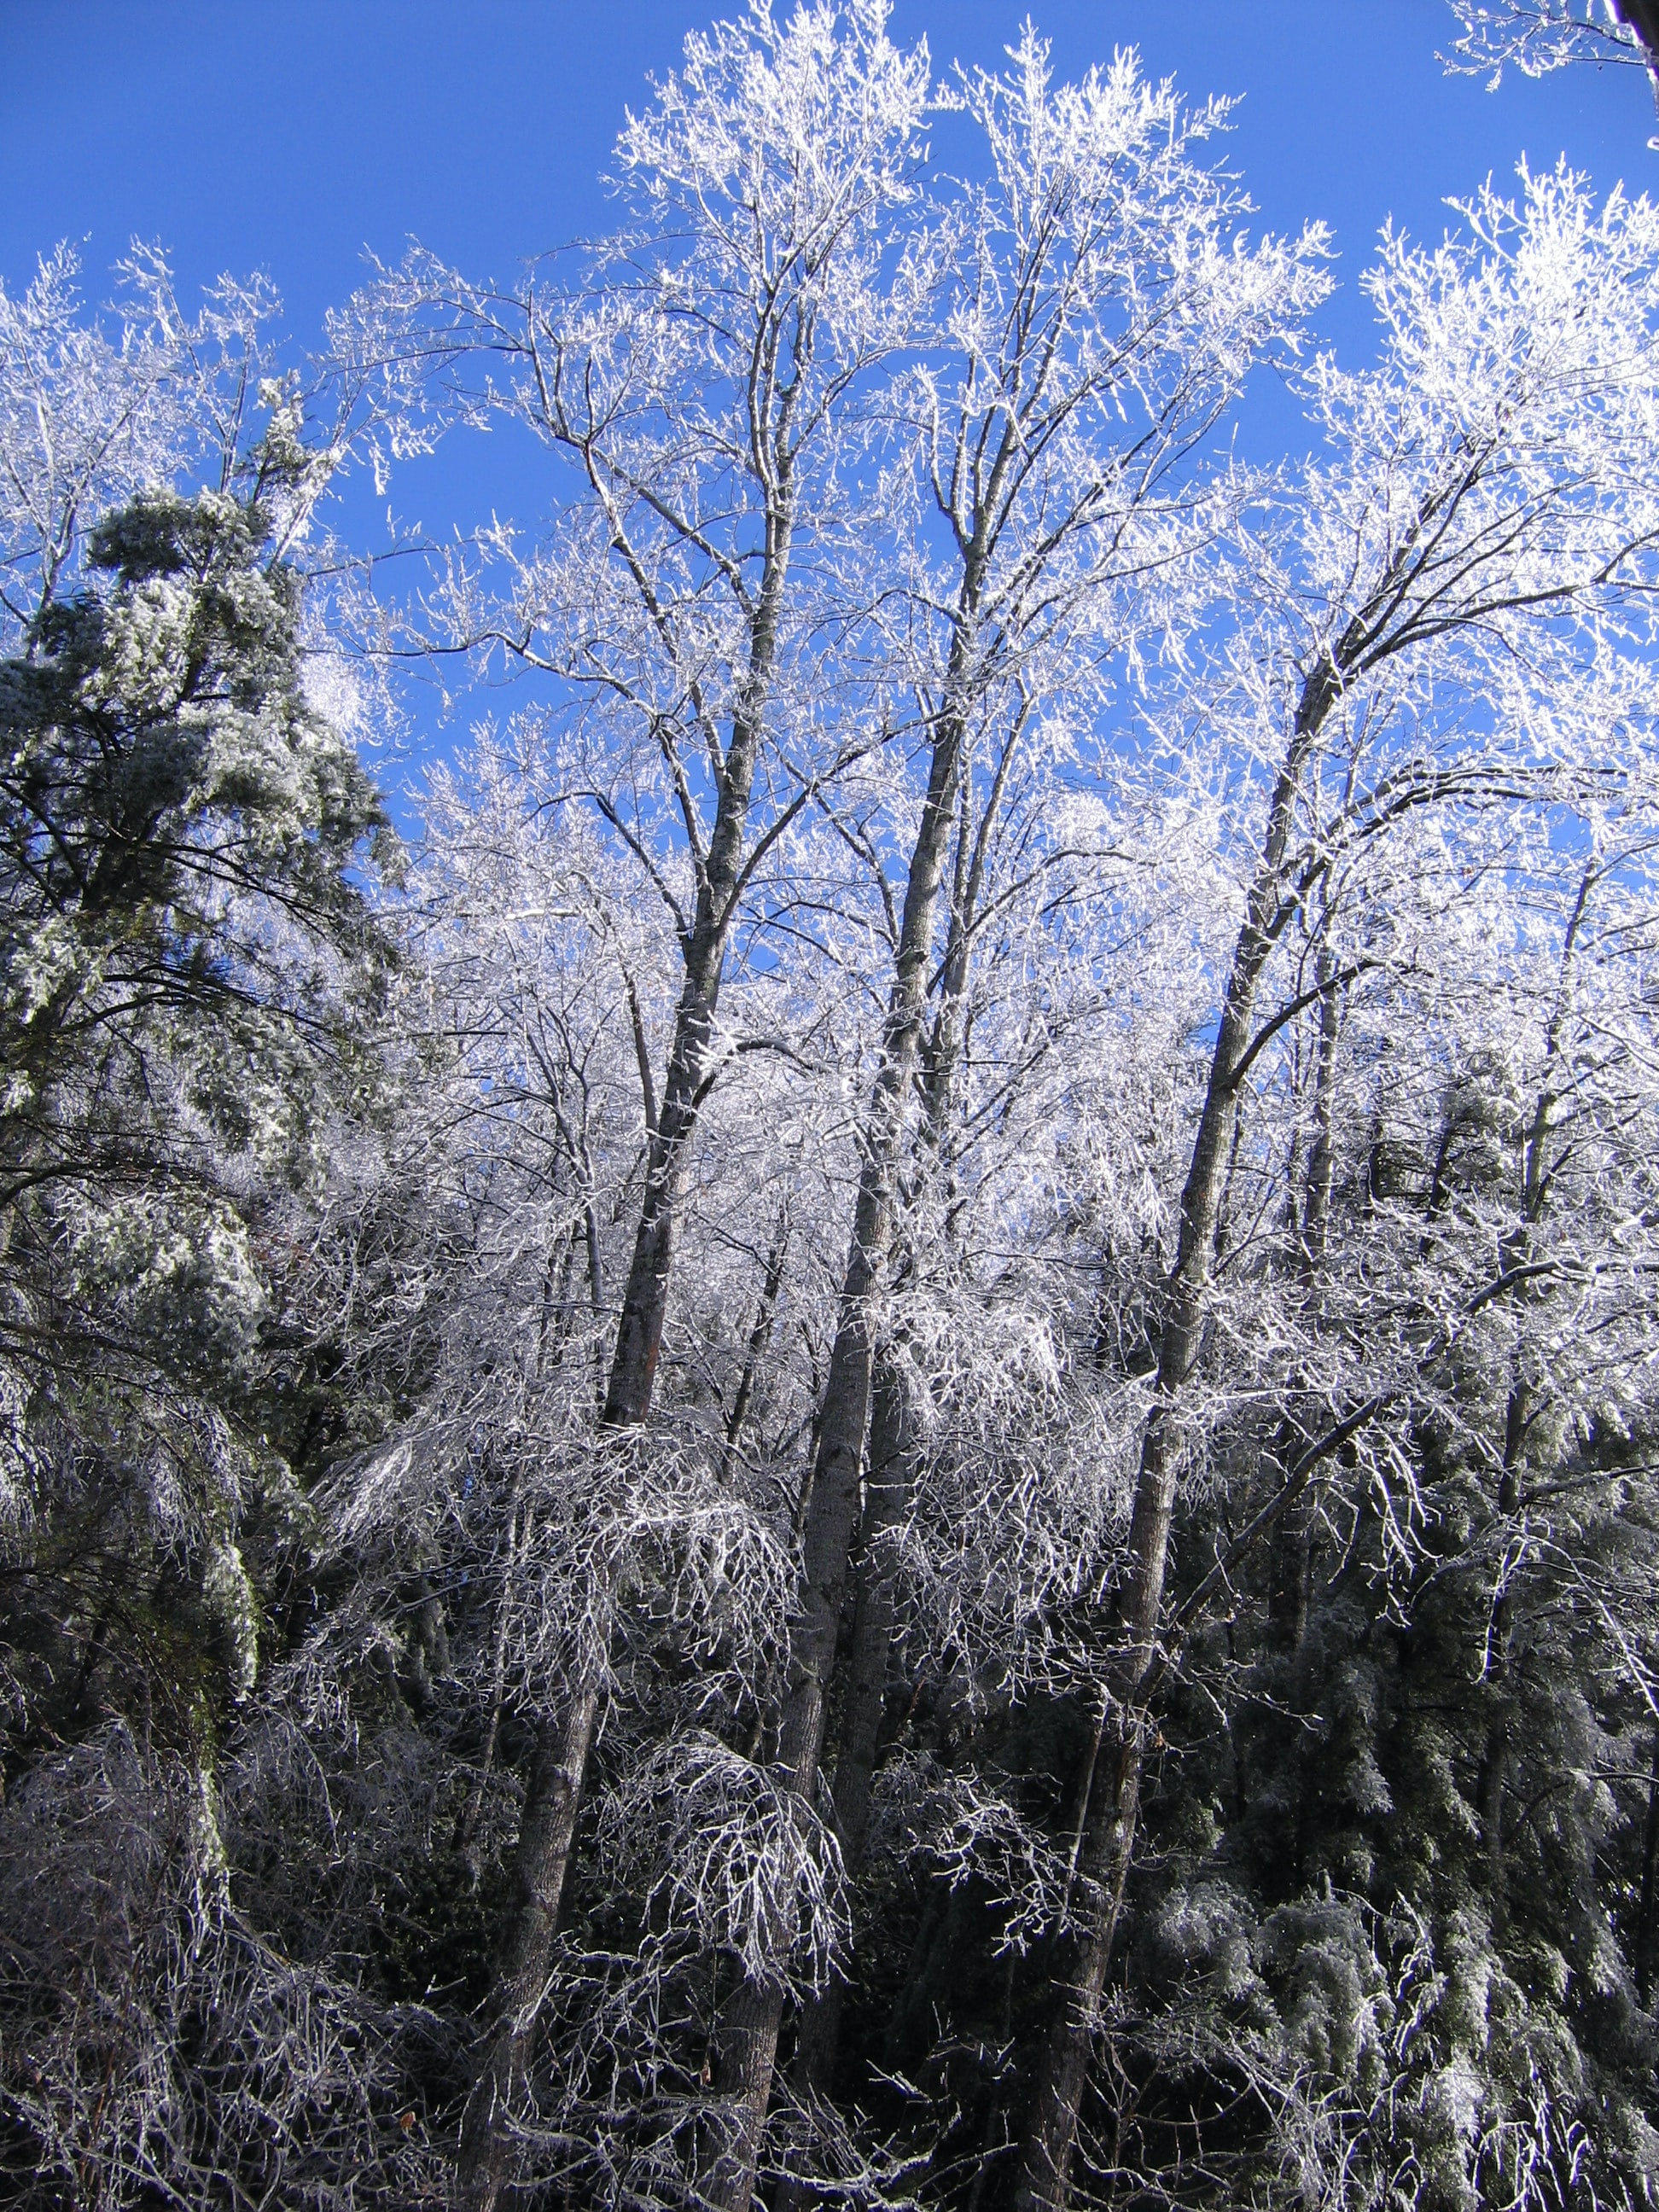 photo of snow covered trees under blue sky